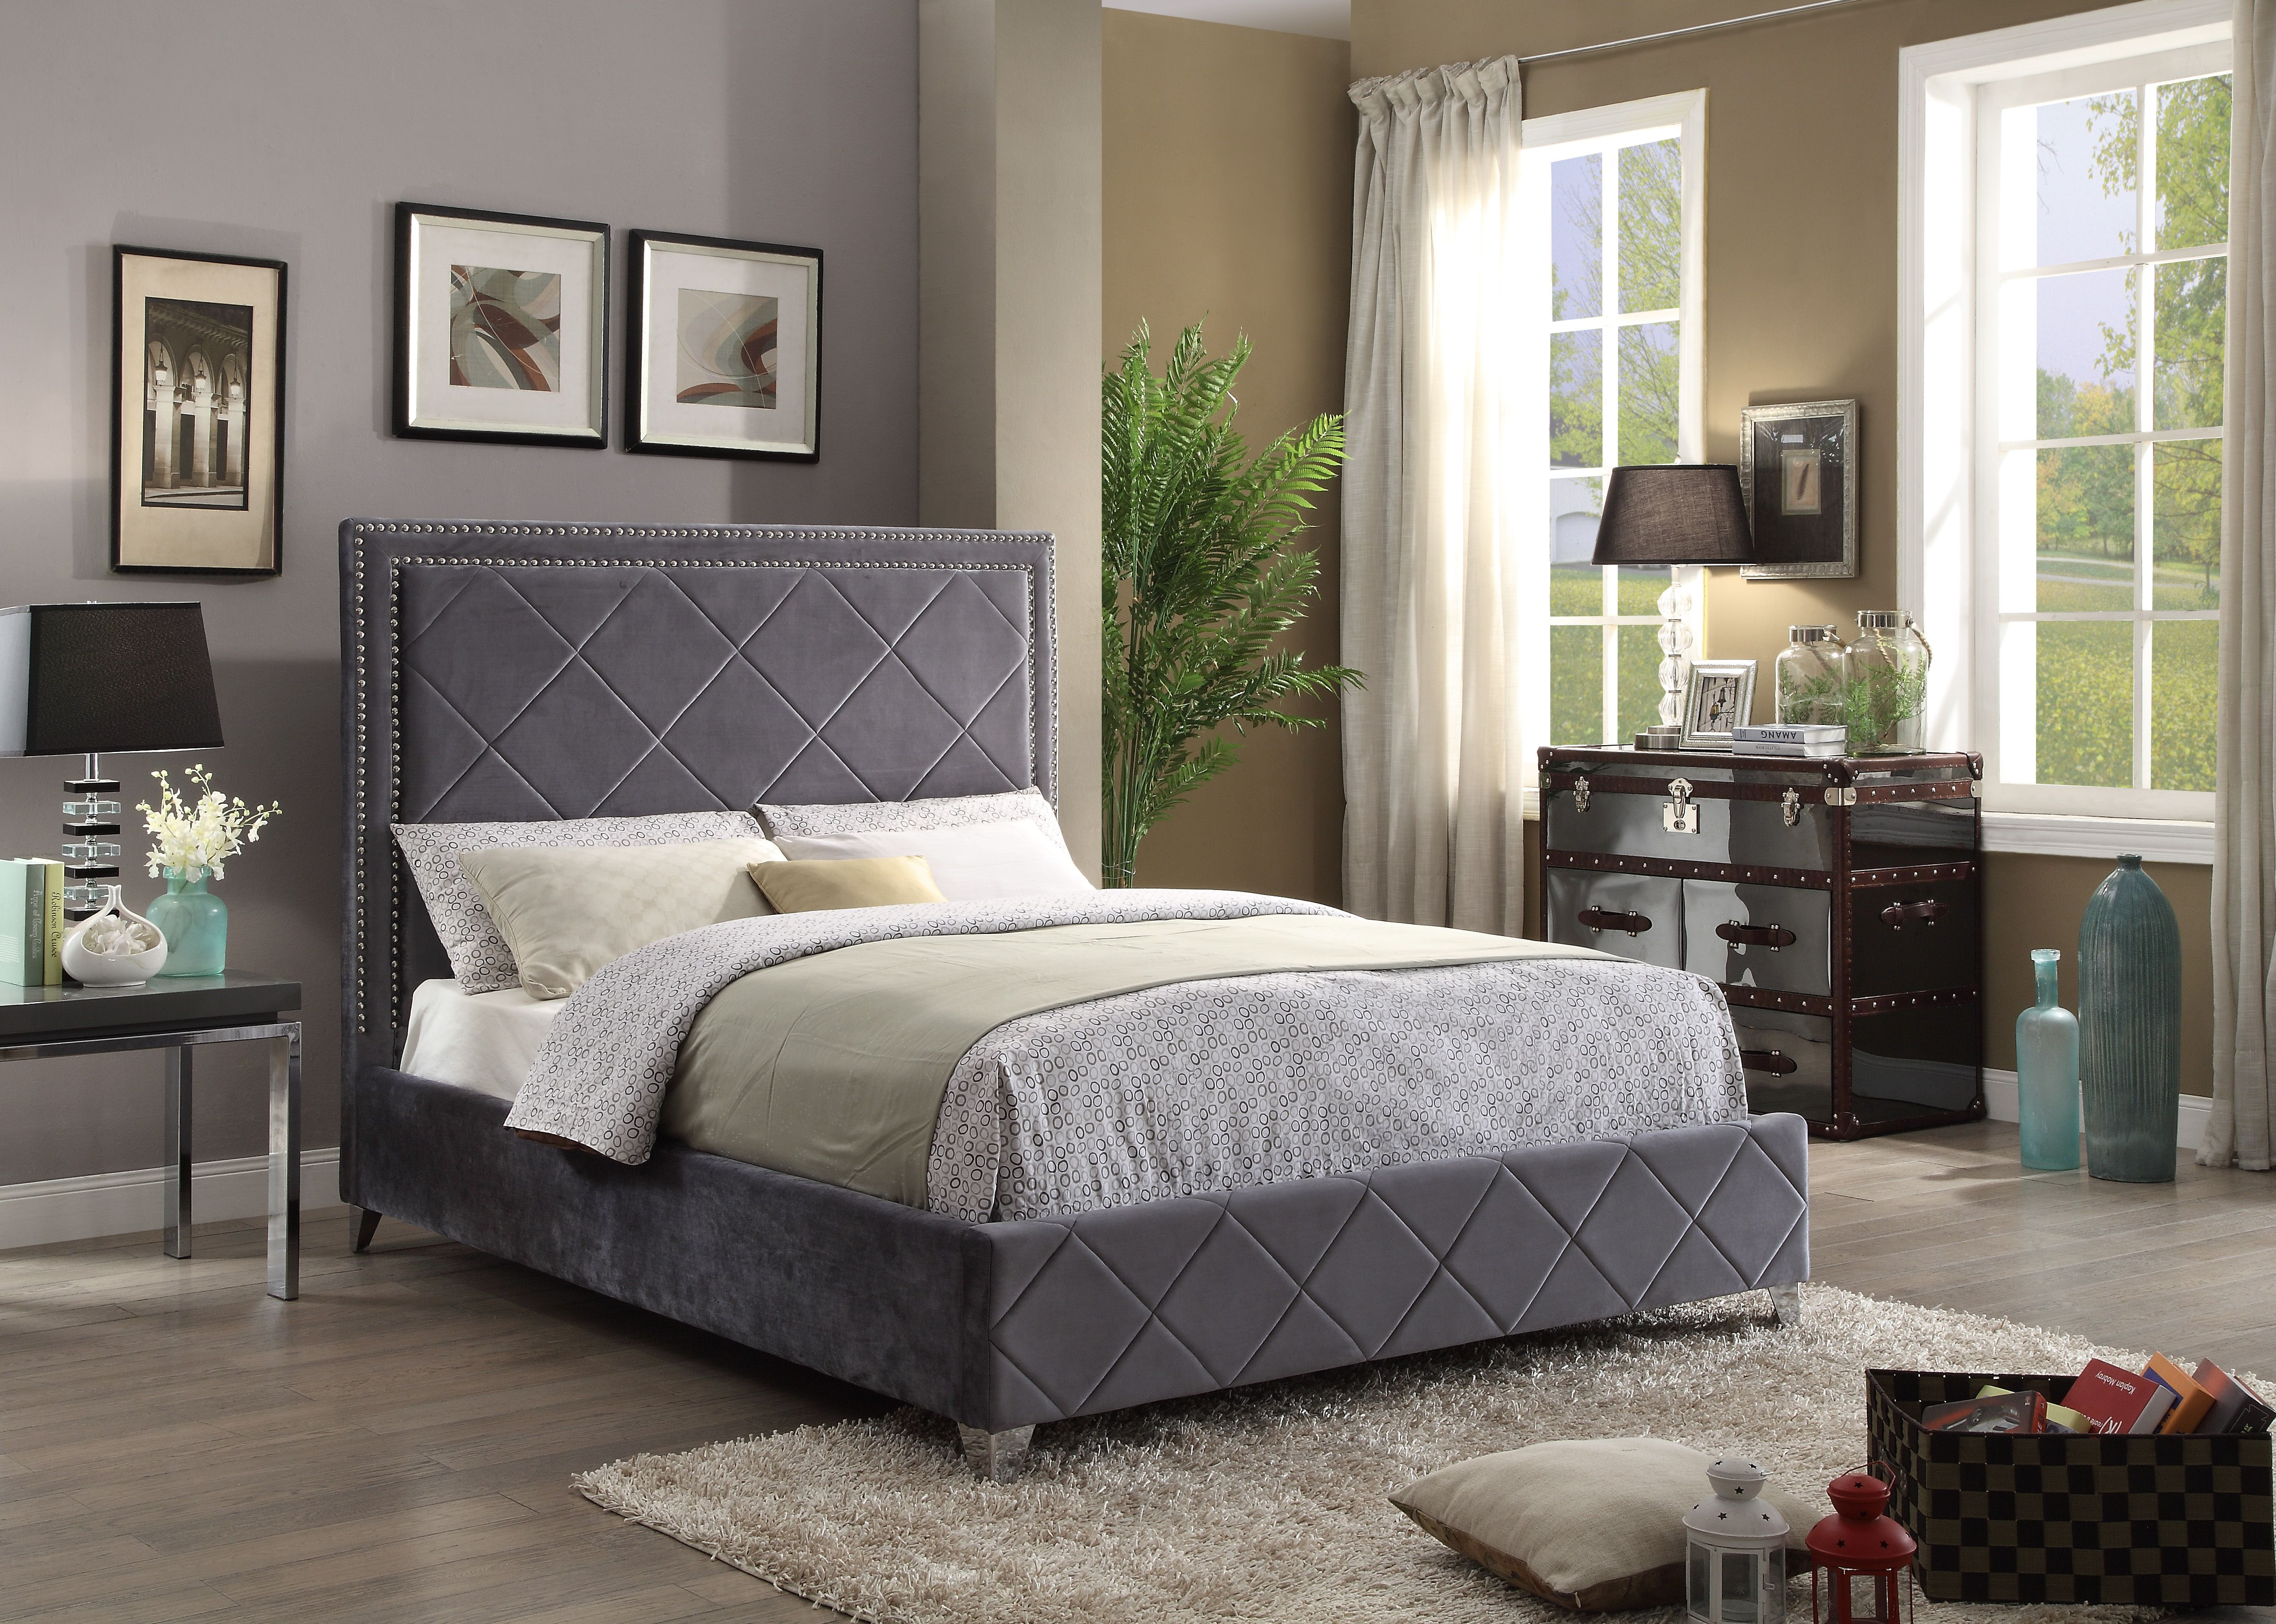 Velvet upholstered bed by Meridian Furniture on